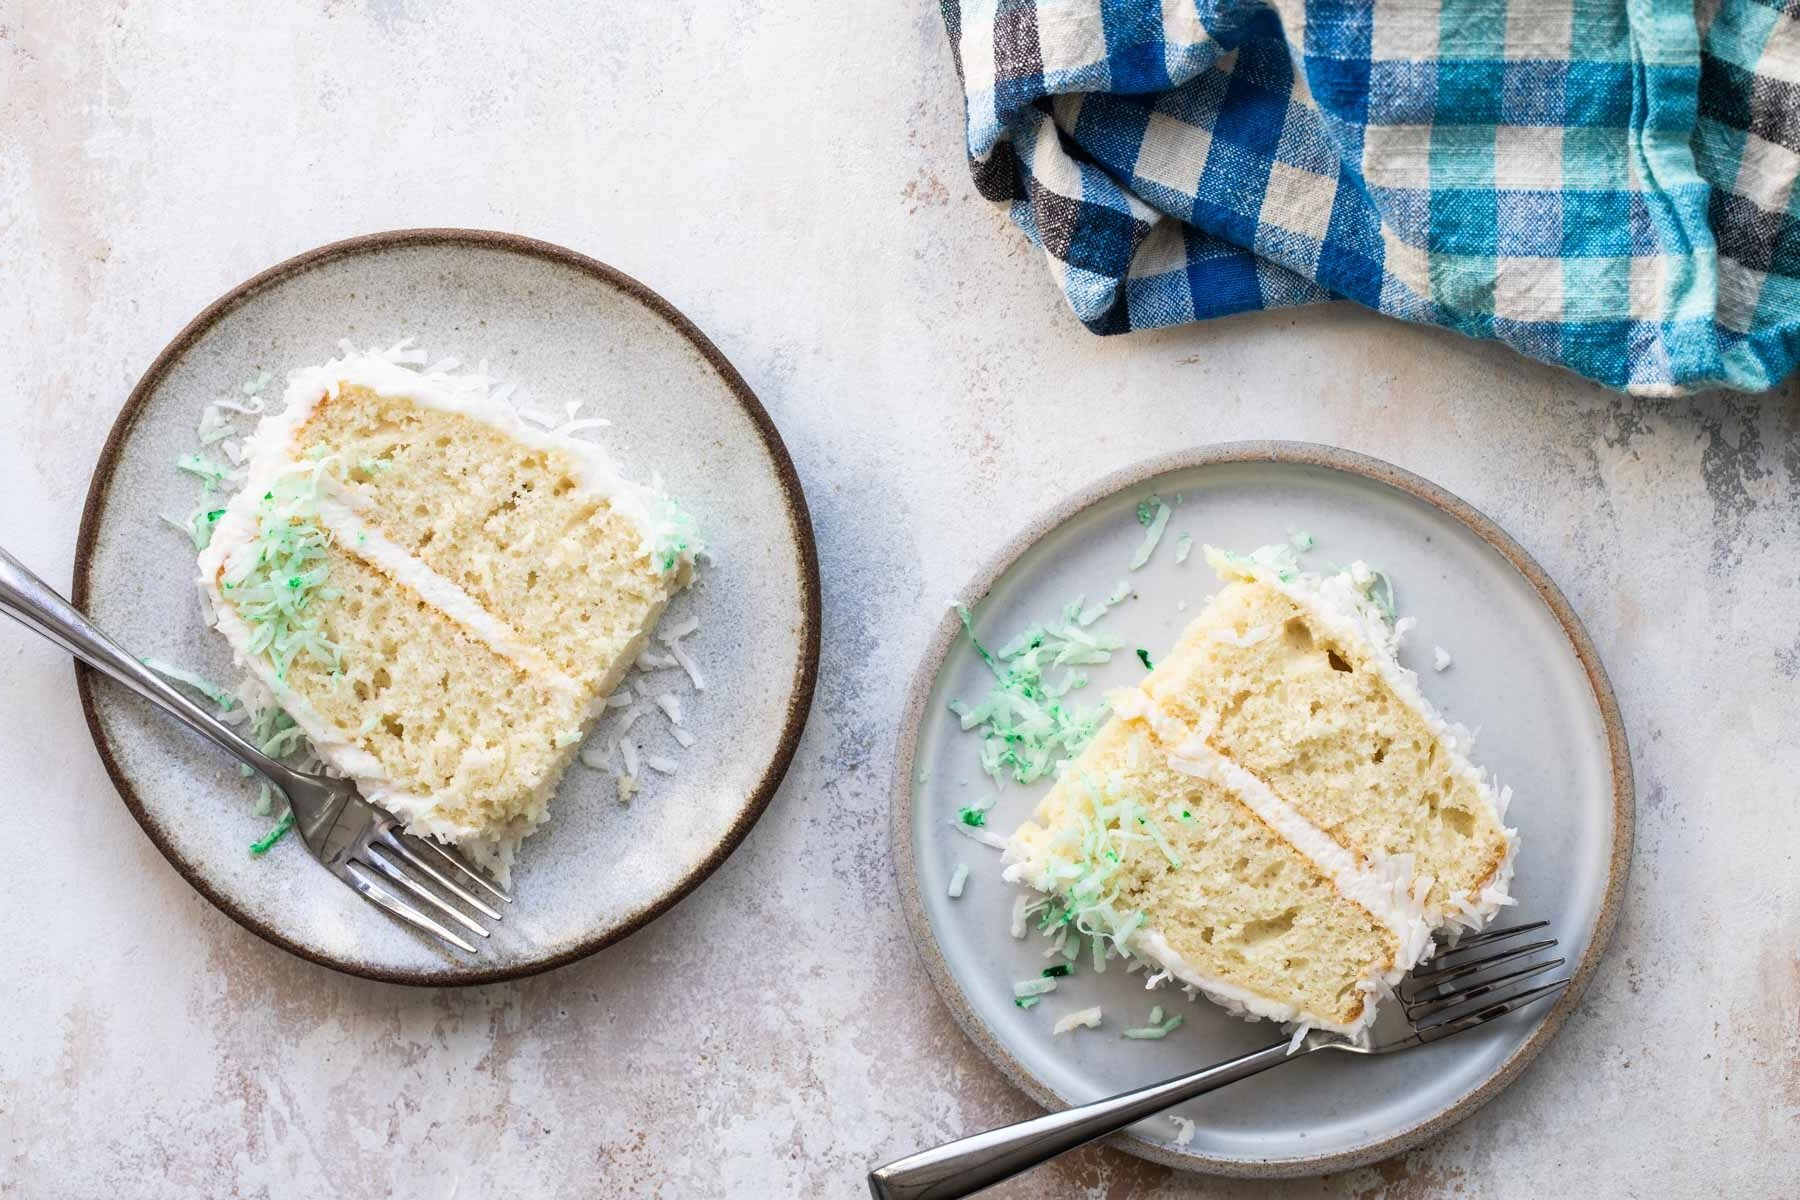 Two plates with slices of bunny cake on them.